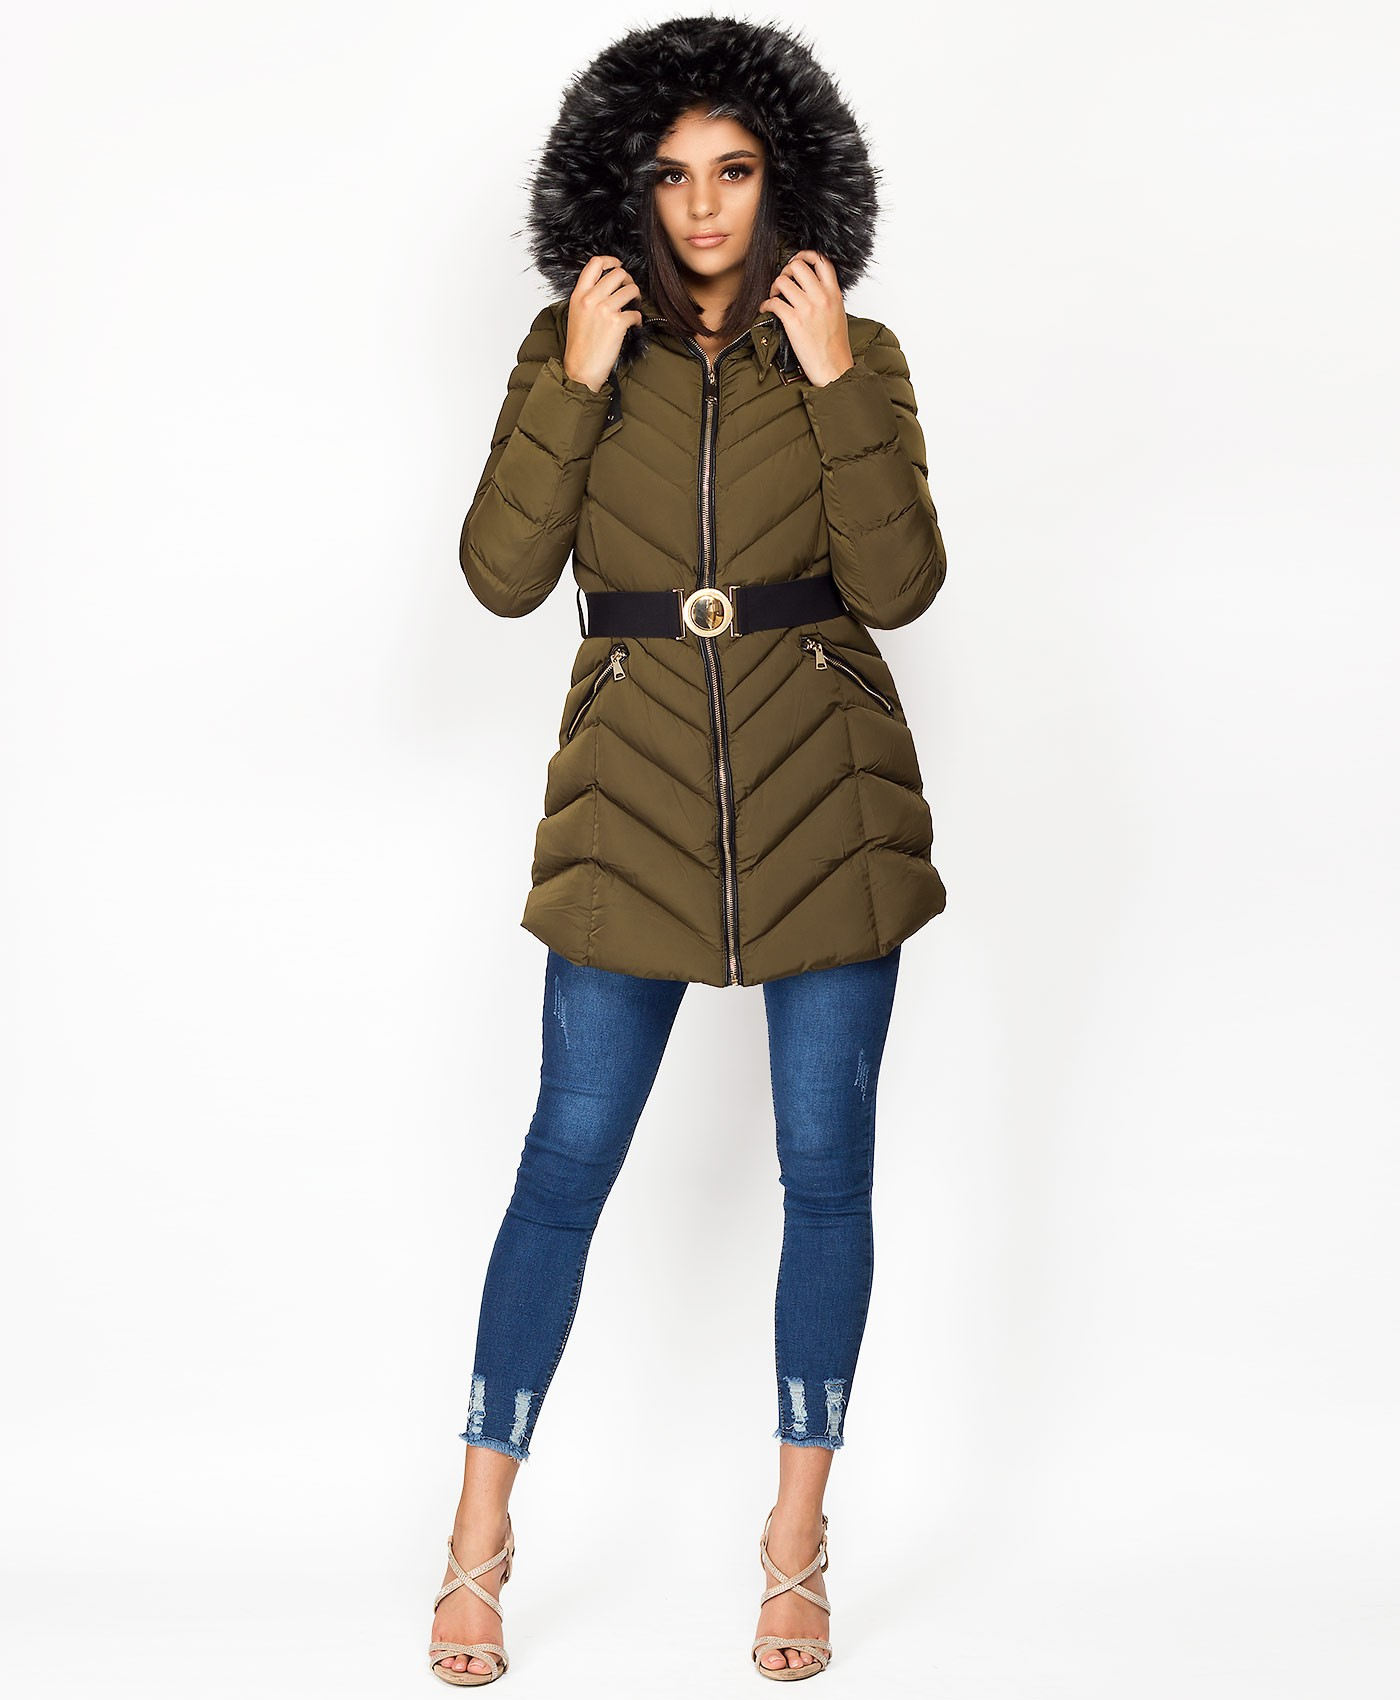 Khaki-3-4-Length-Belted-Chevron-Quilted-Padded-Jacket-4